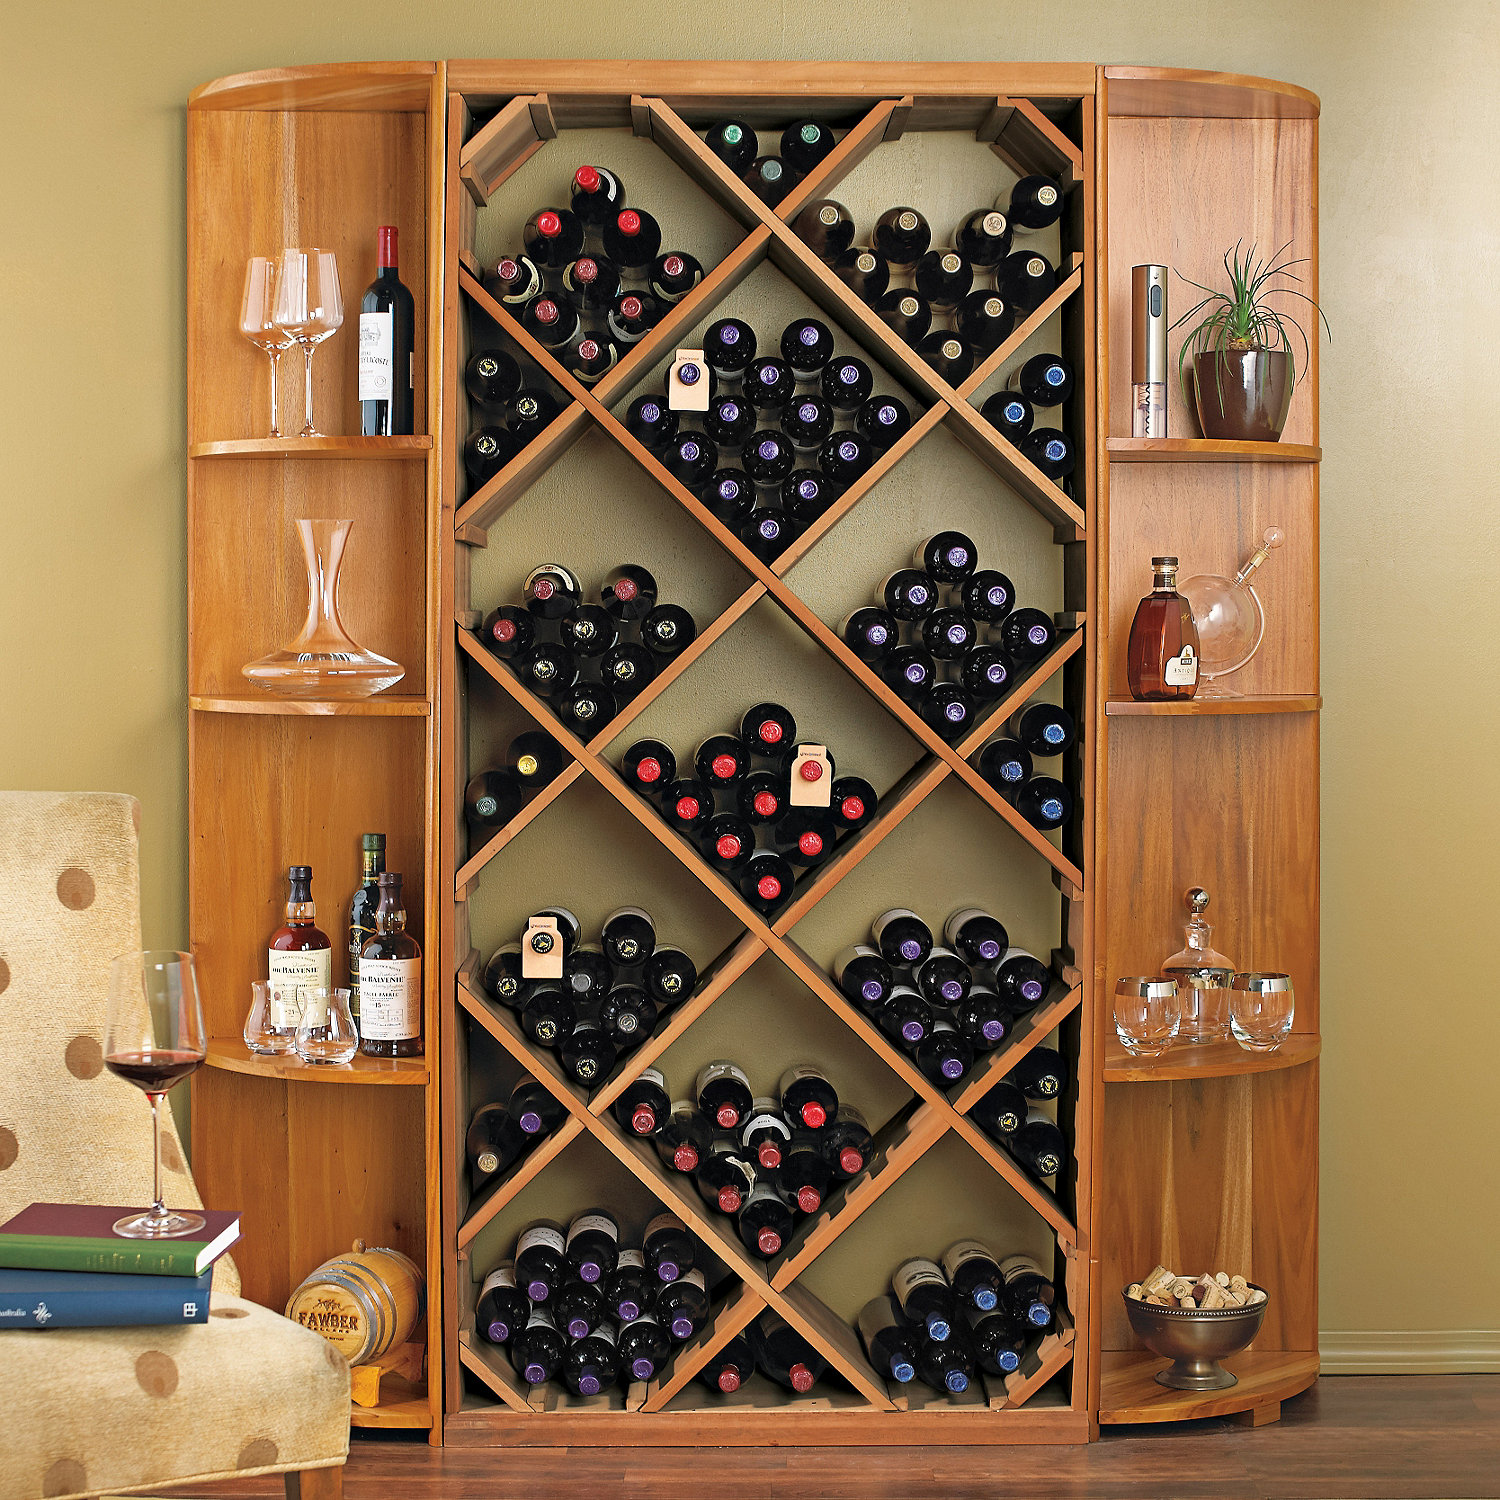 n finity diy diamond bin dual quarter round shelf wine rack set rh wineenthusiast com diy wine holder diy wine crate shelves